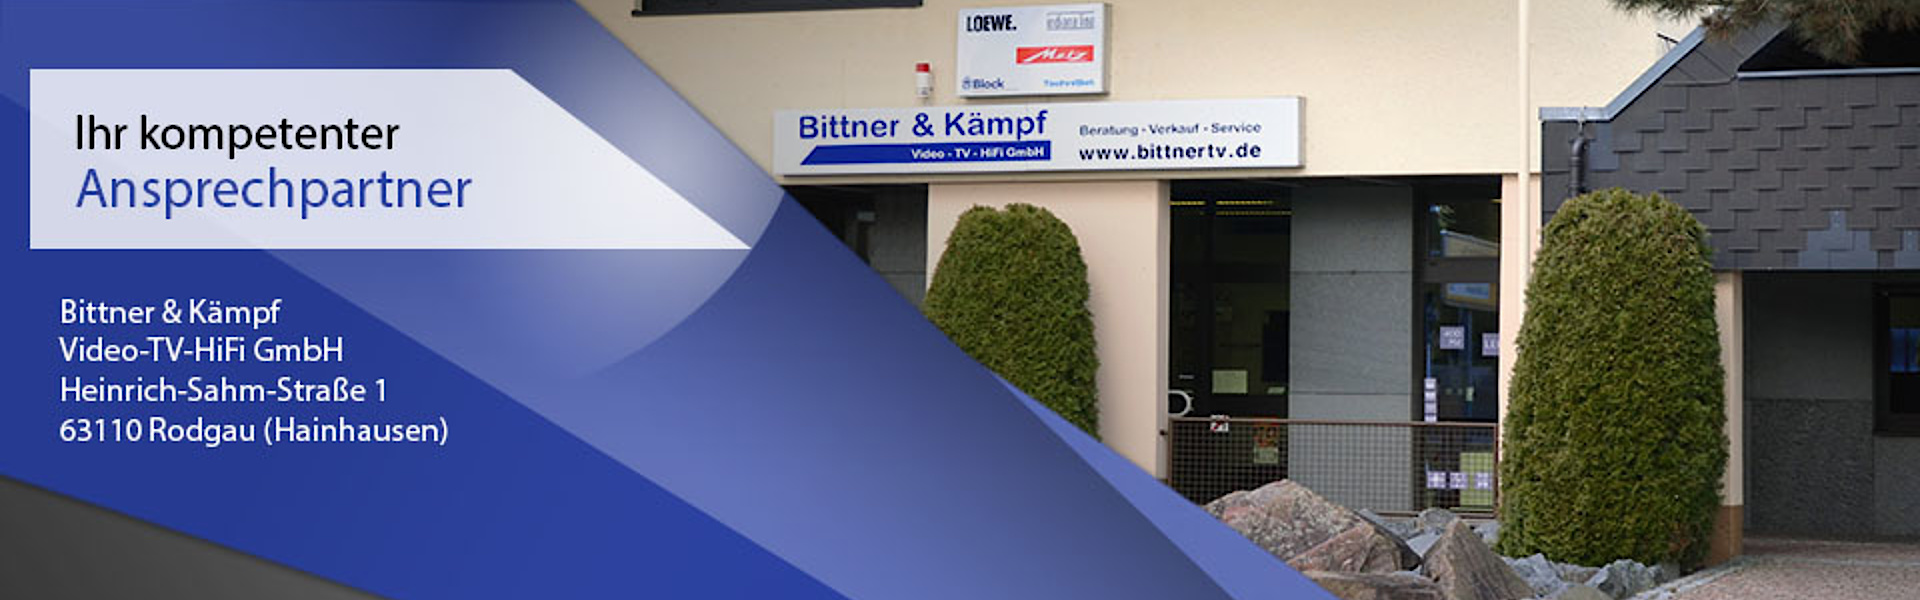 Bittner & Kämpf Video- Tv- HiFi GmbH in Rodgau